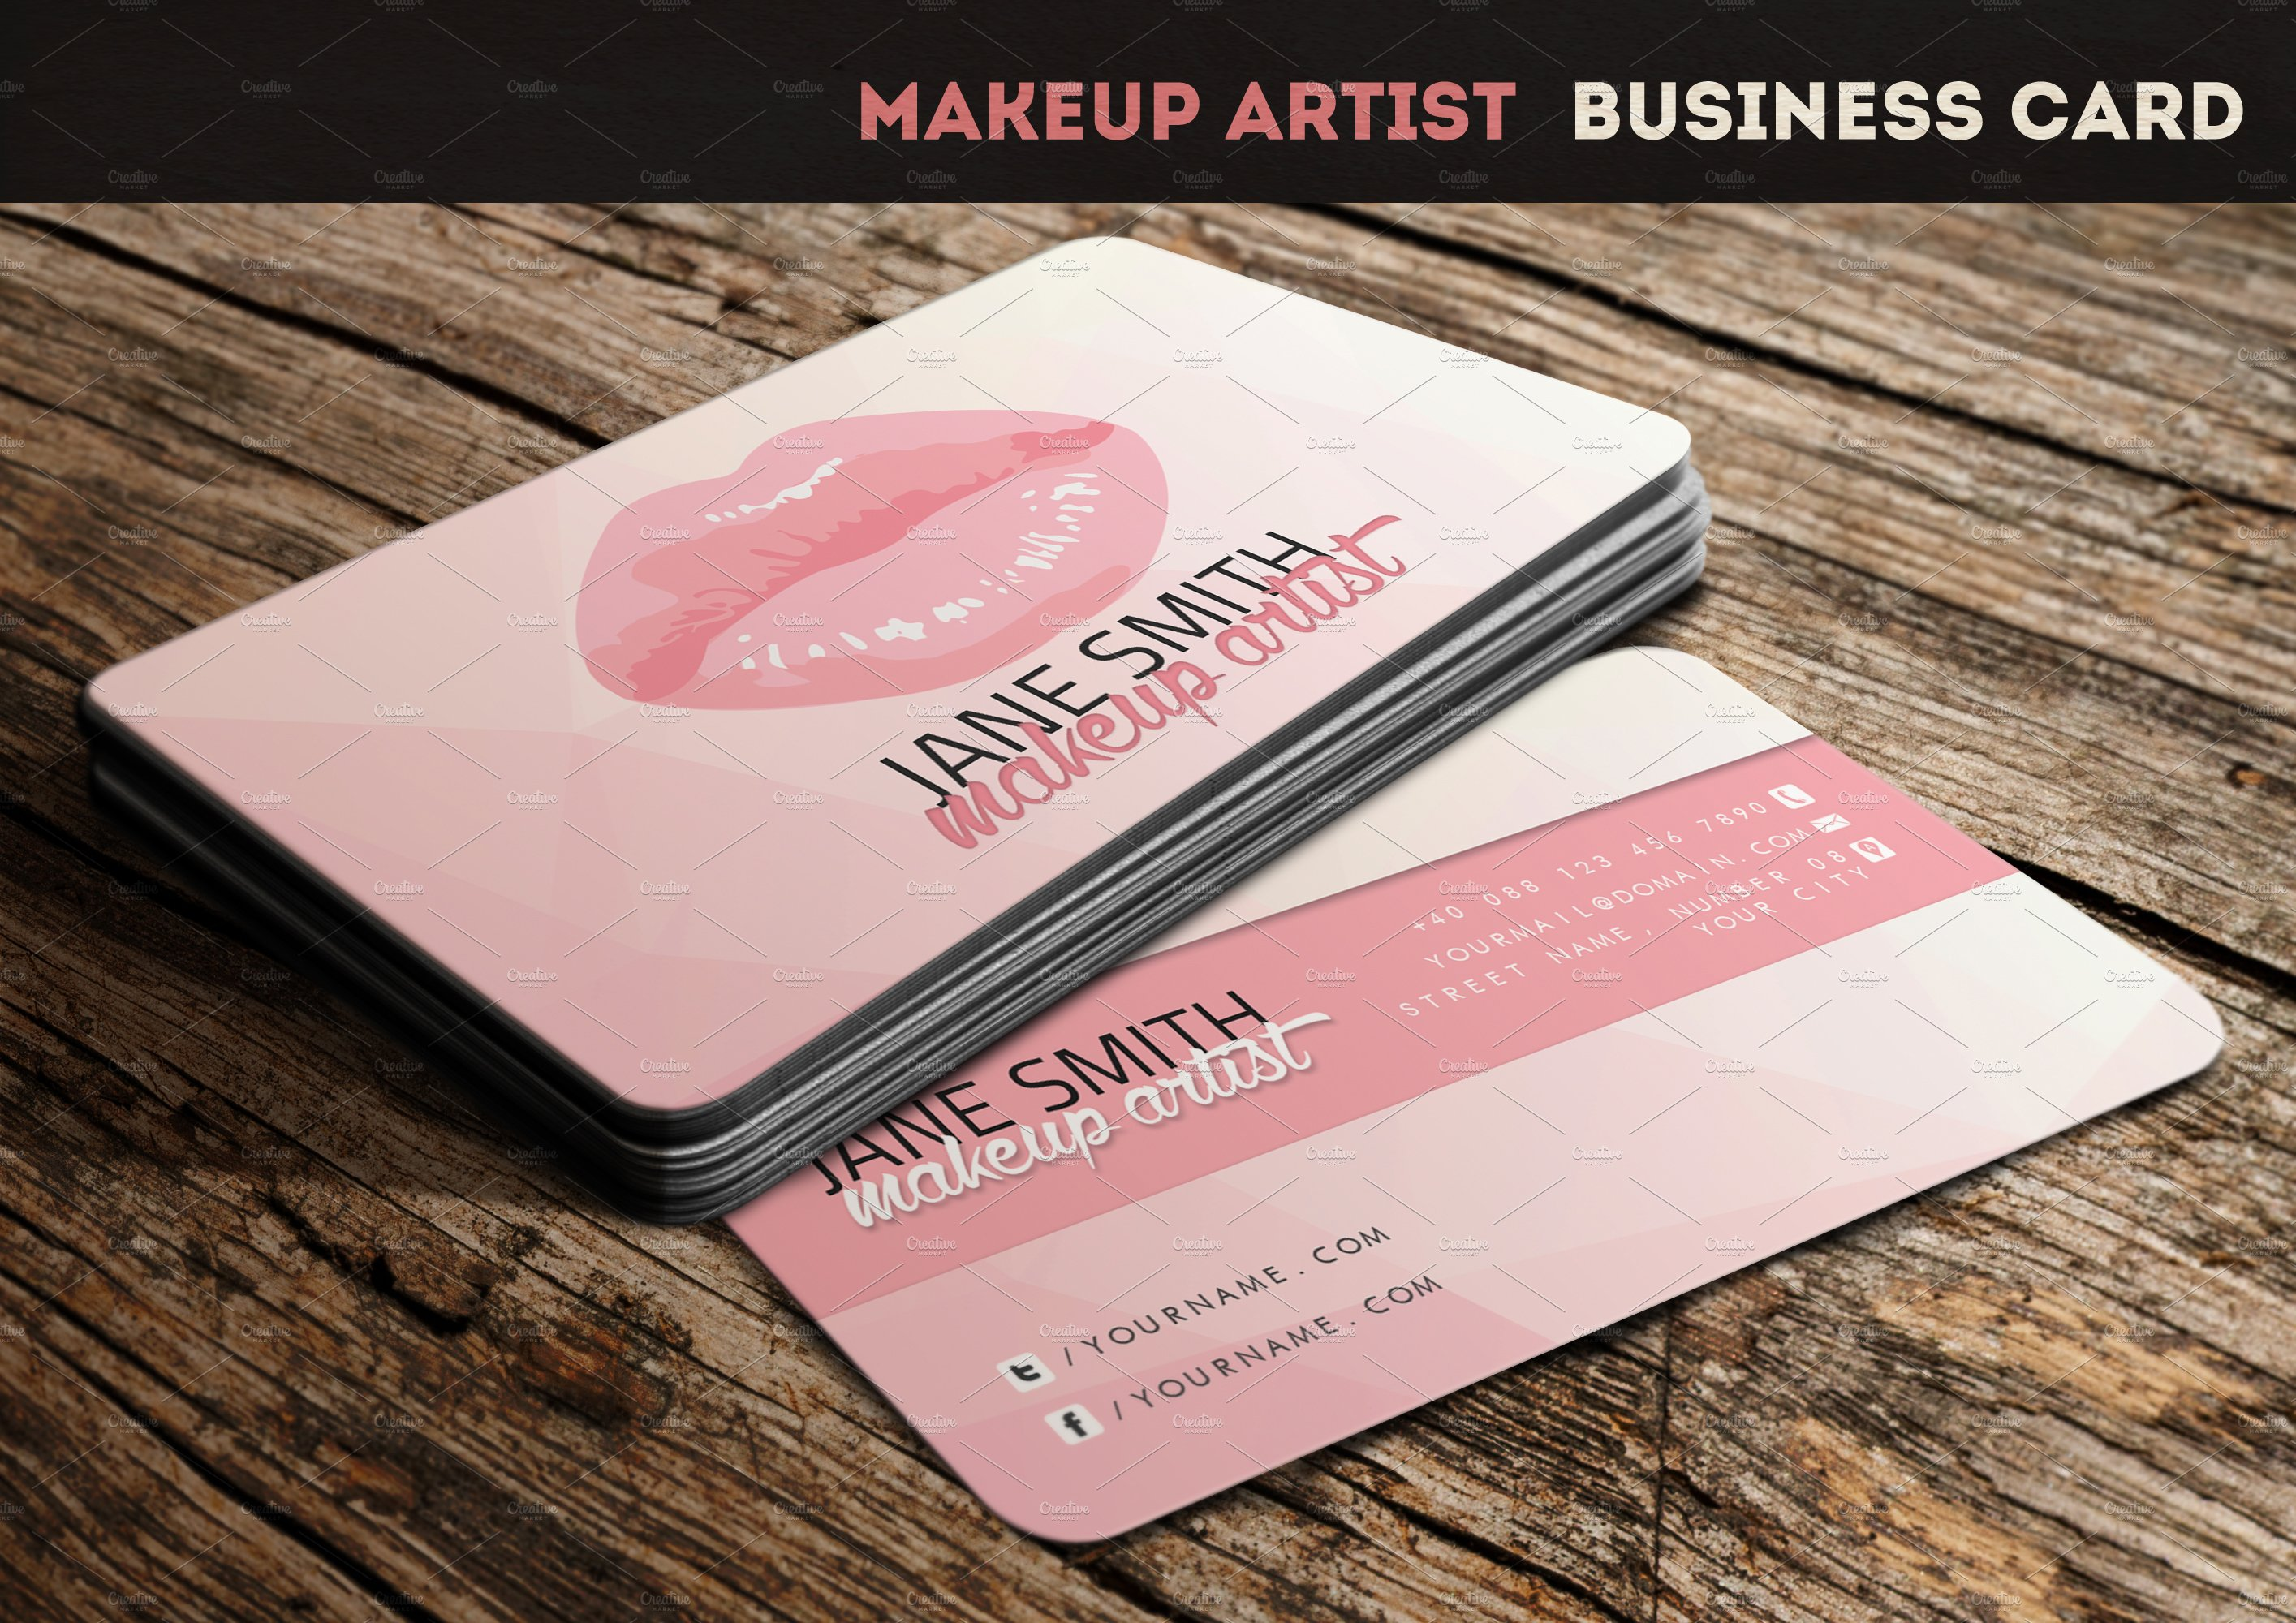 Makeup artist business card business card templates creative makeup artist business card business card templates creative market alramifo Image collections